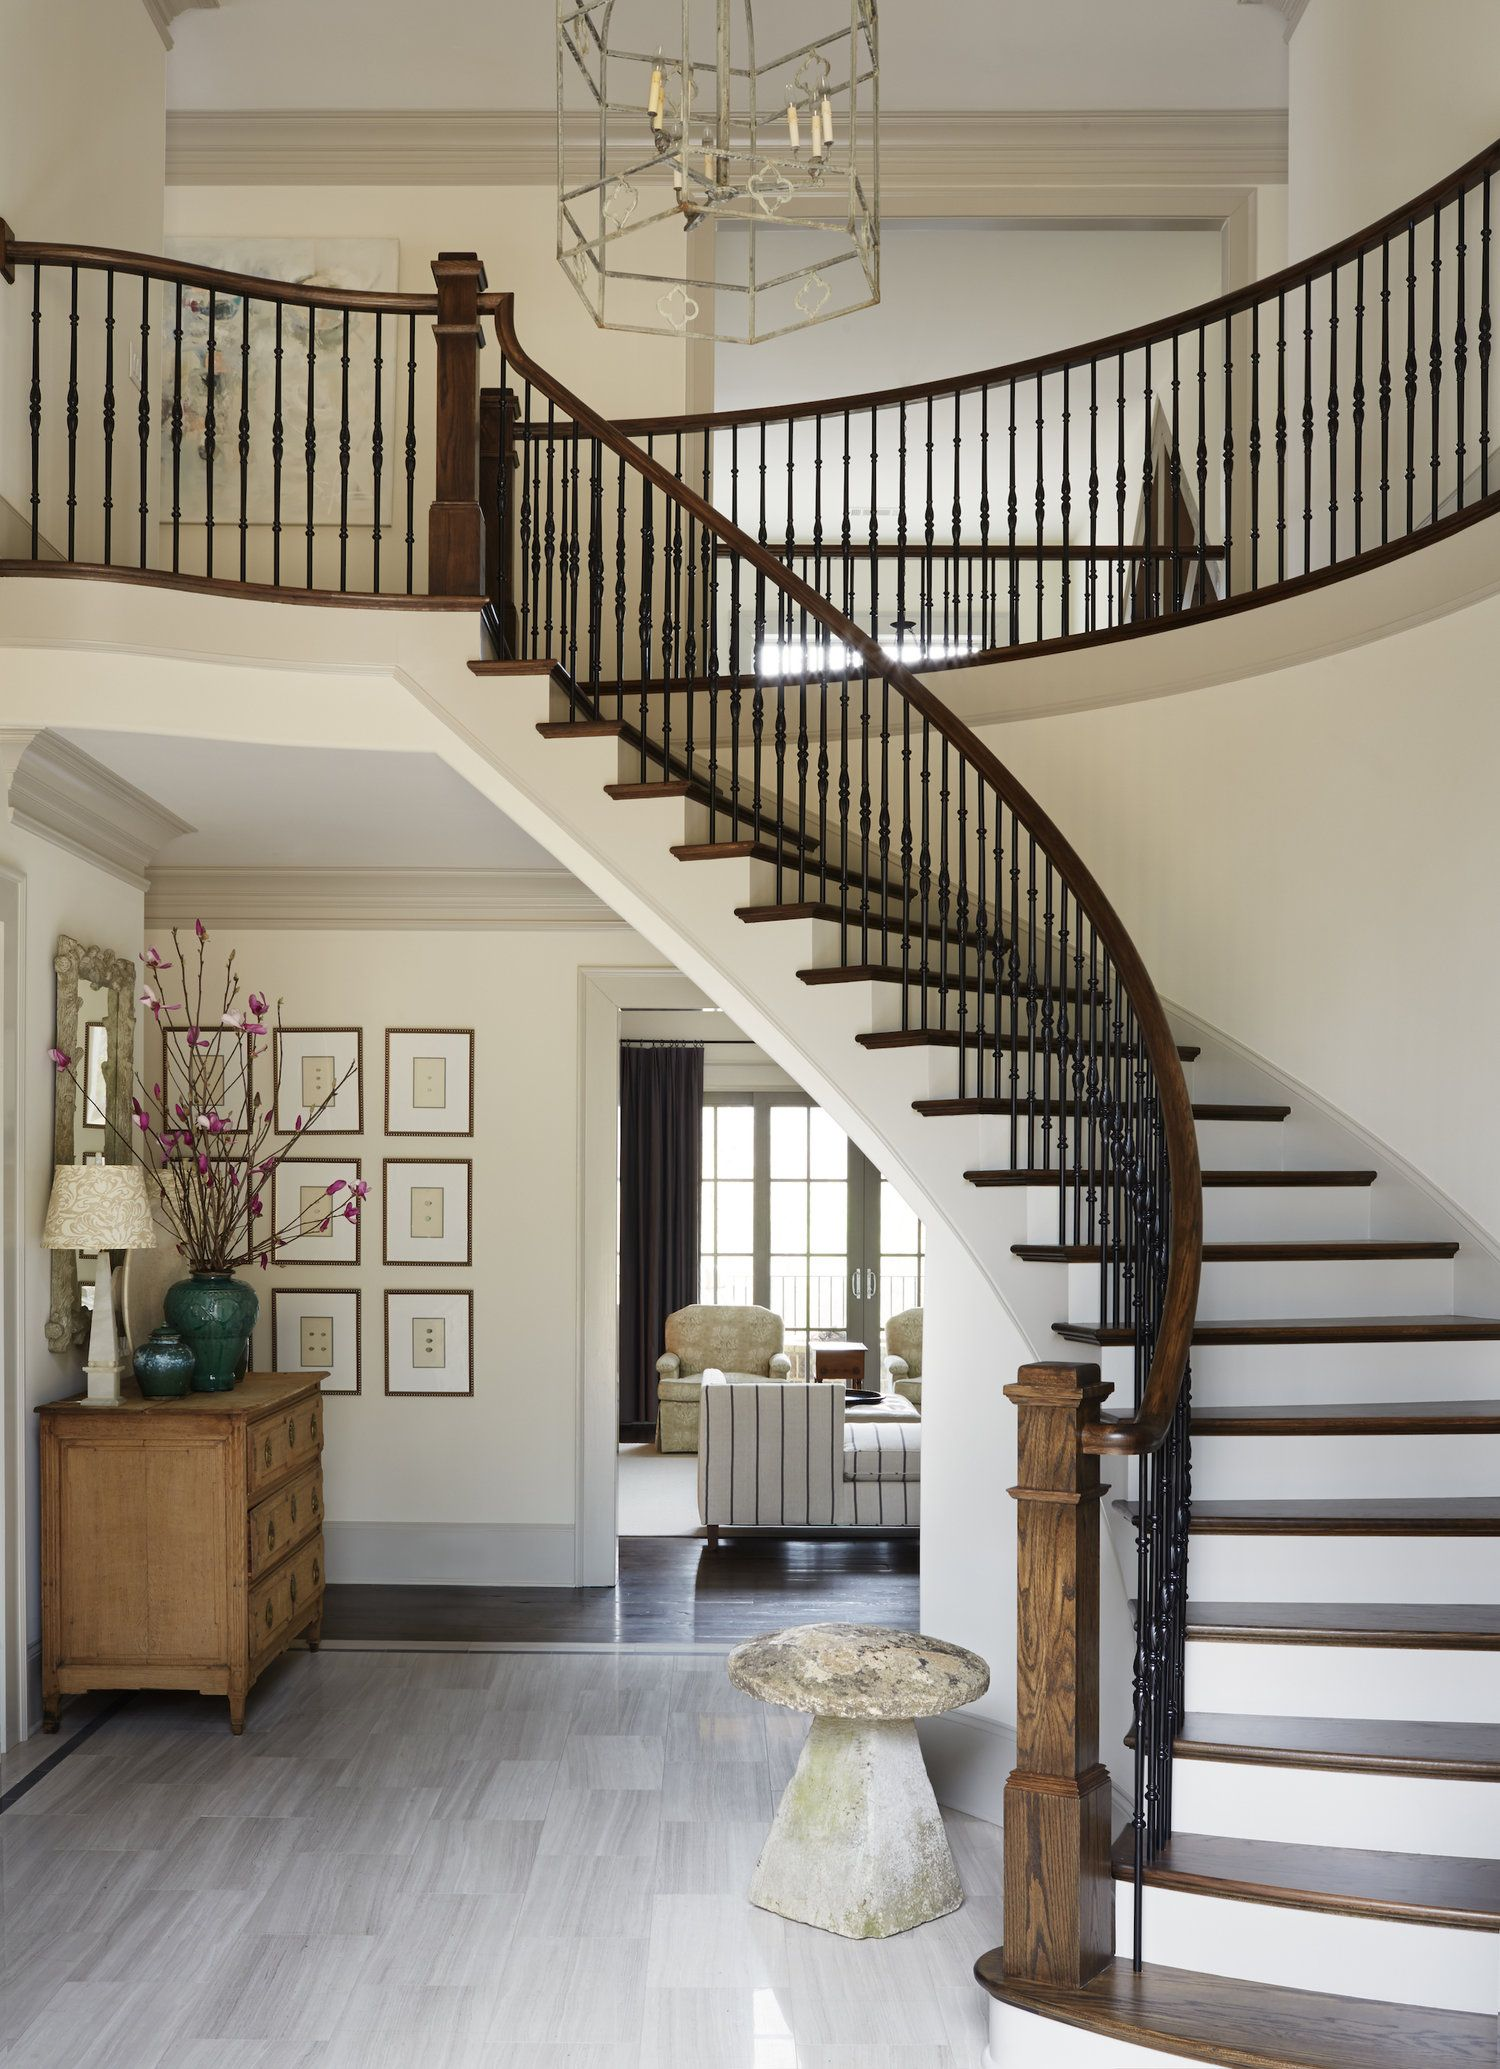 Best Grand Curved Stairway Design In Entryway Amy Meier 400 x 300